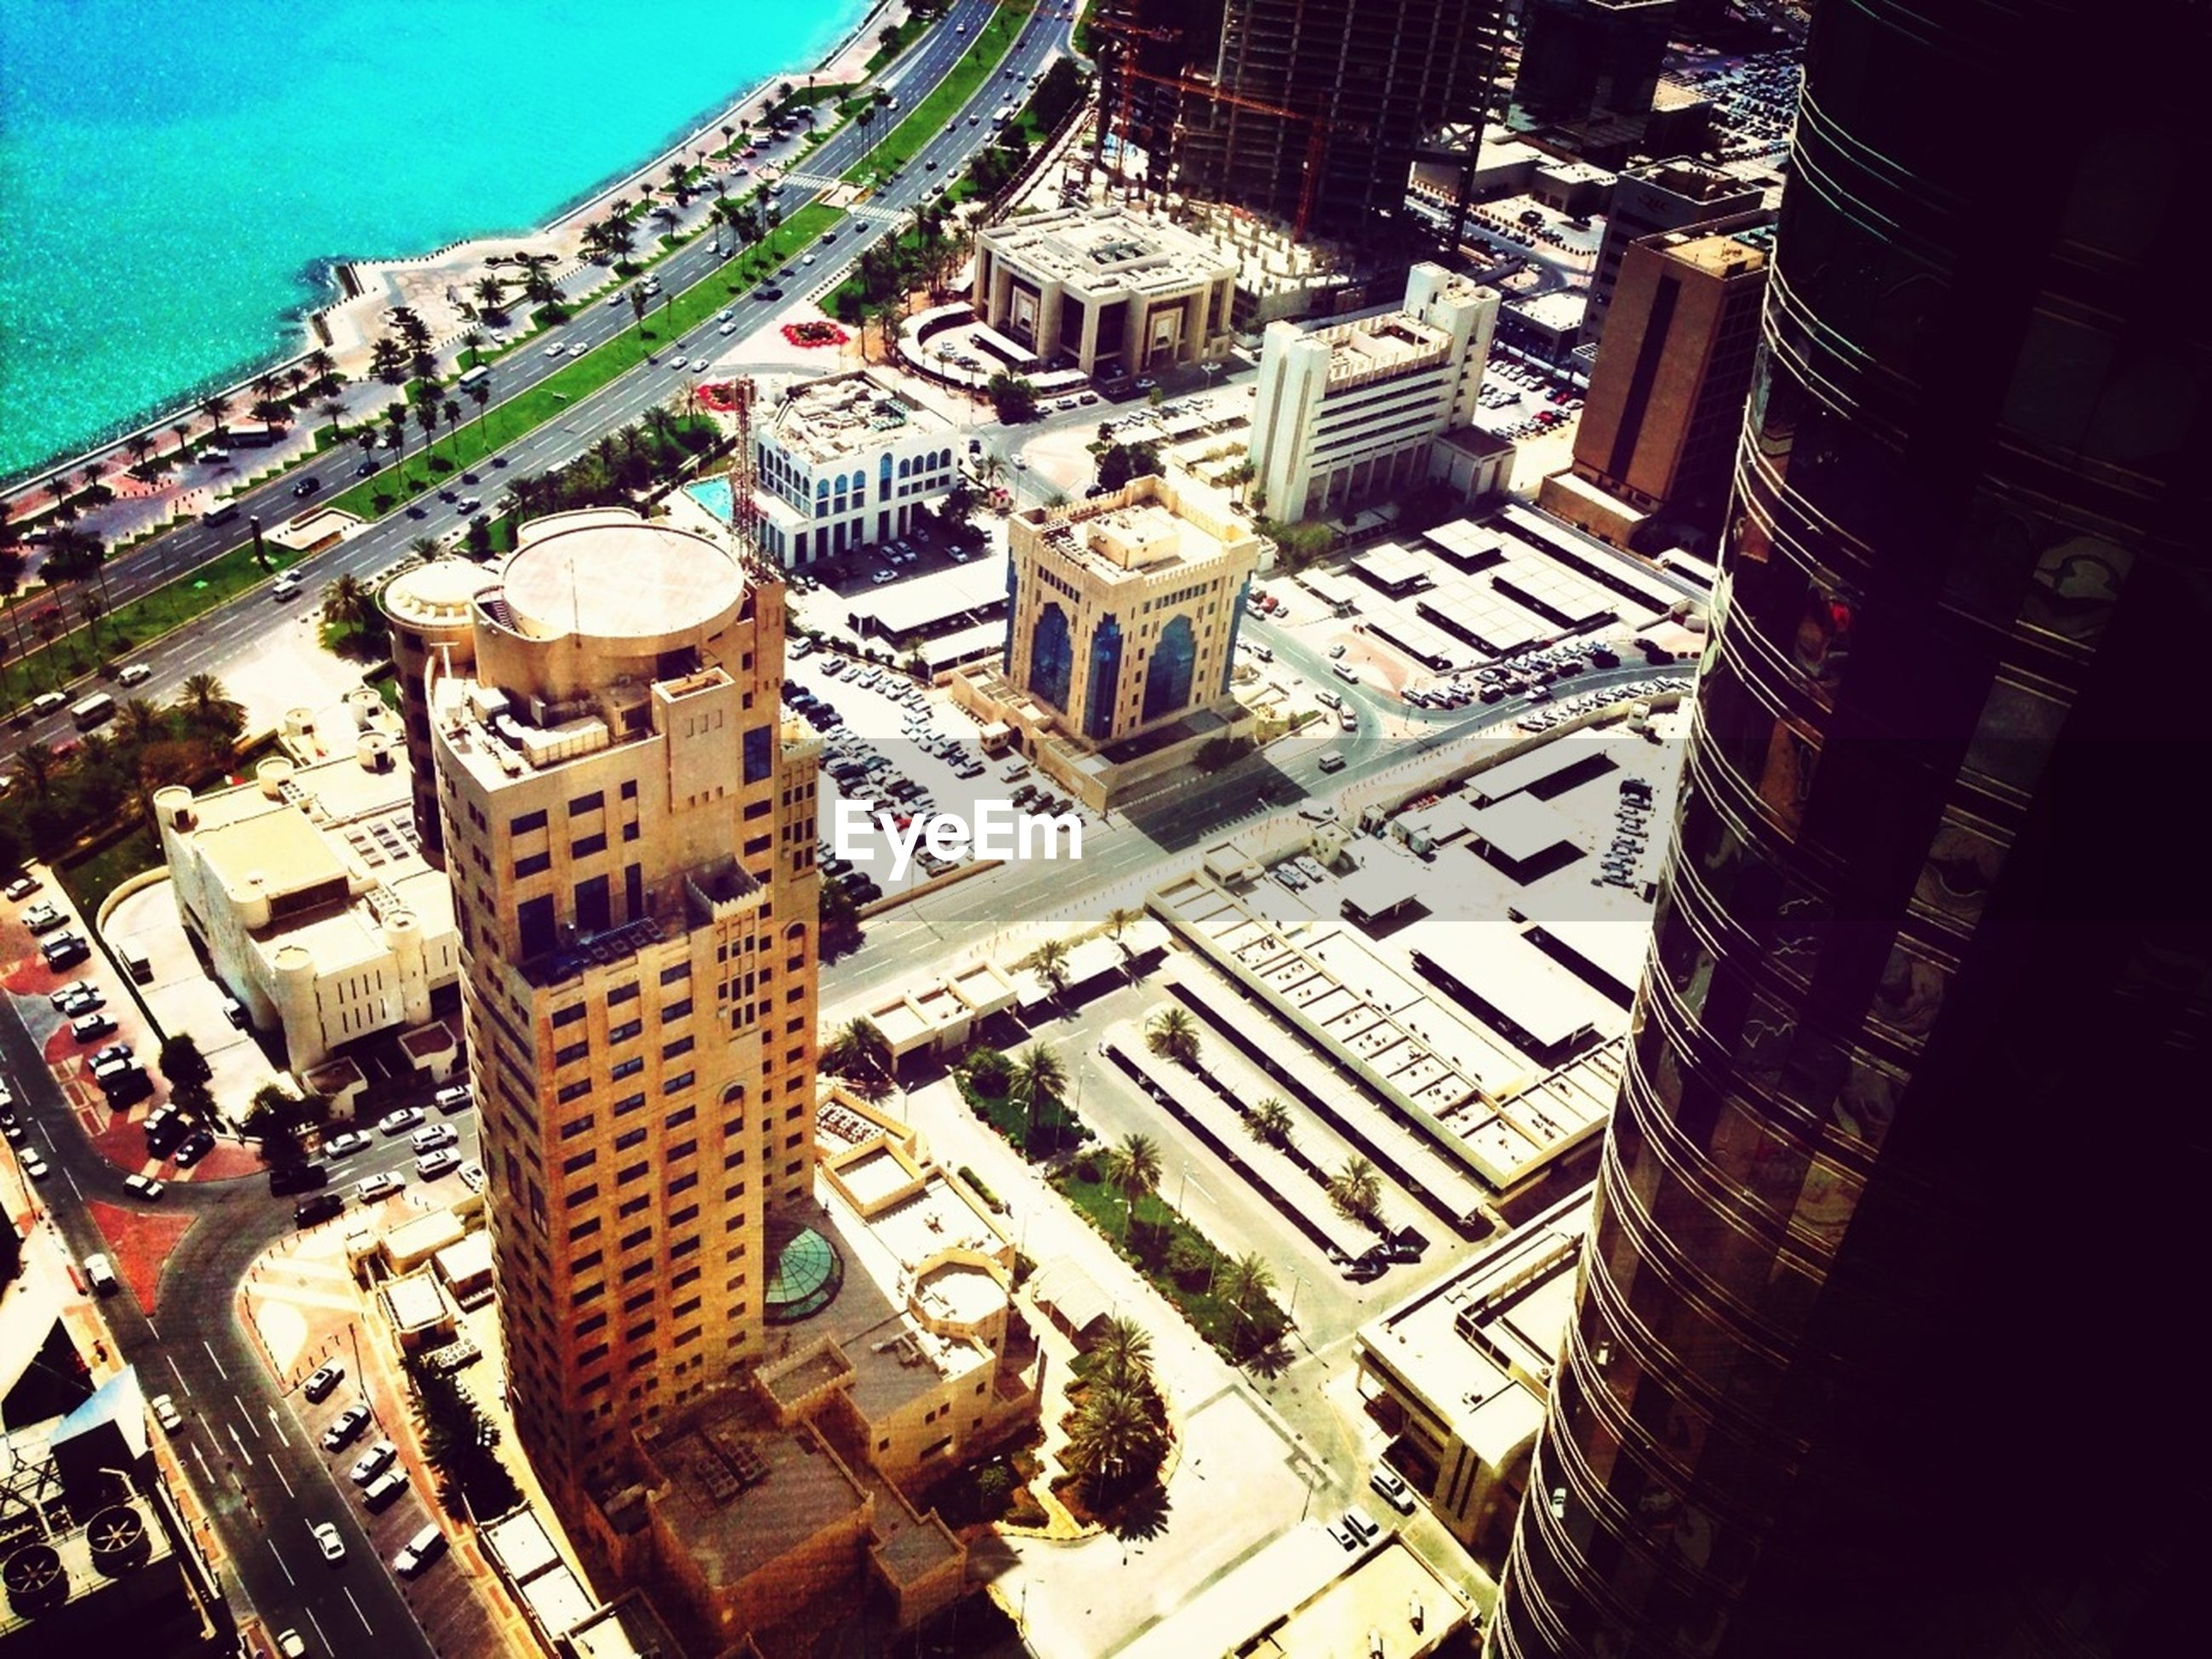 architecture, building exterior, built structure, high angle view, city, cityscape, crowded, residential building, residential district, famous place, travel destinations, aerial view, residential structure, tower, city life, capital cities, tourism, travel, international landmark, outdoors